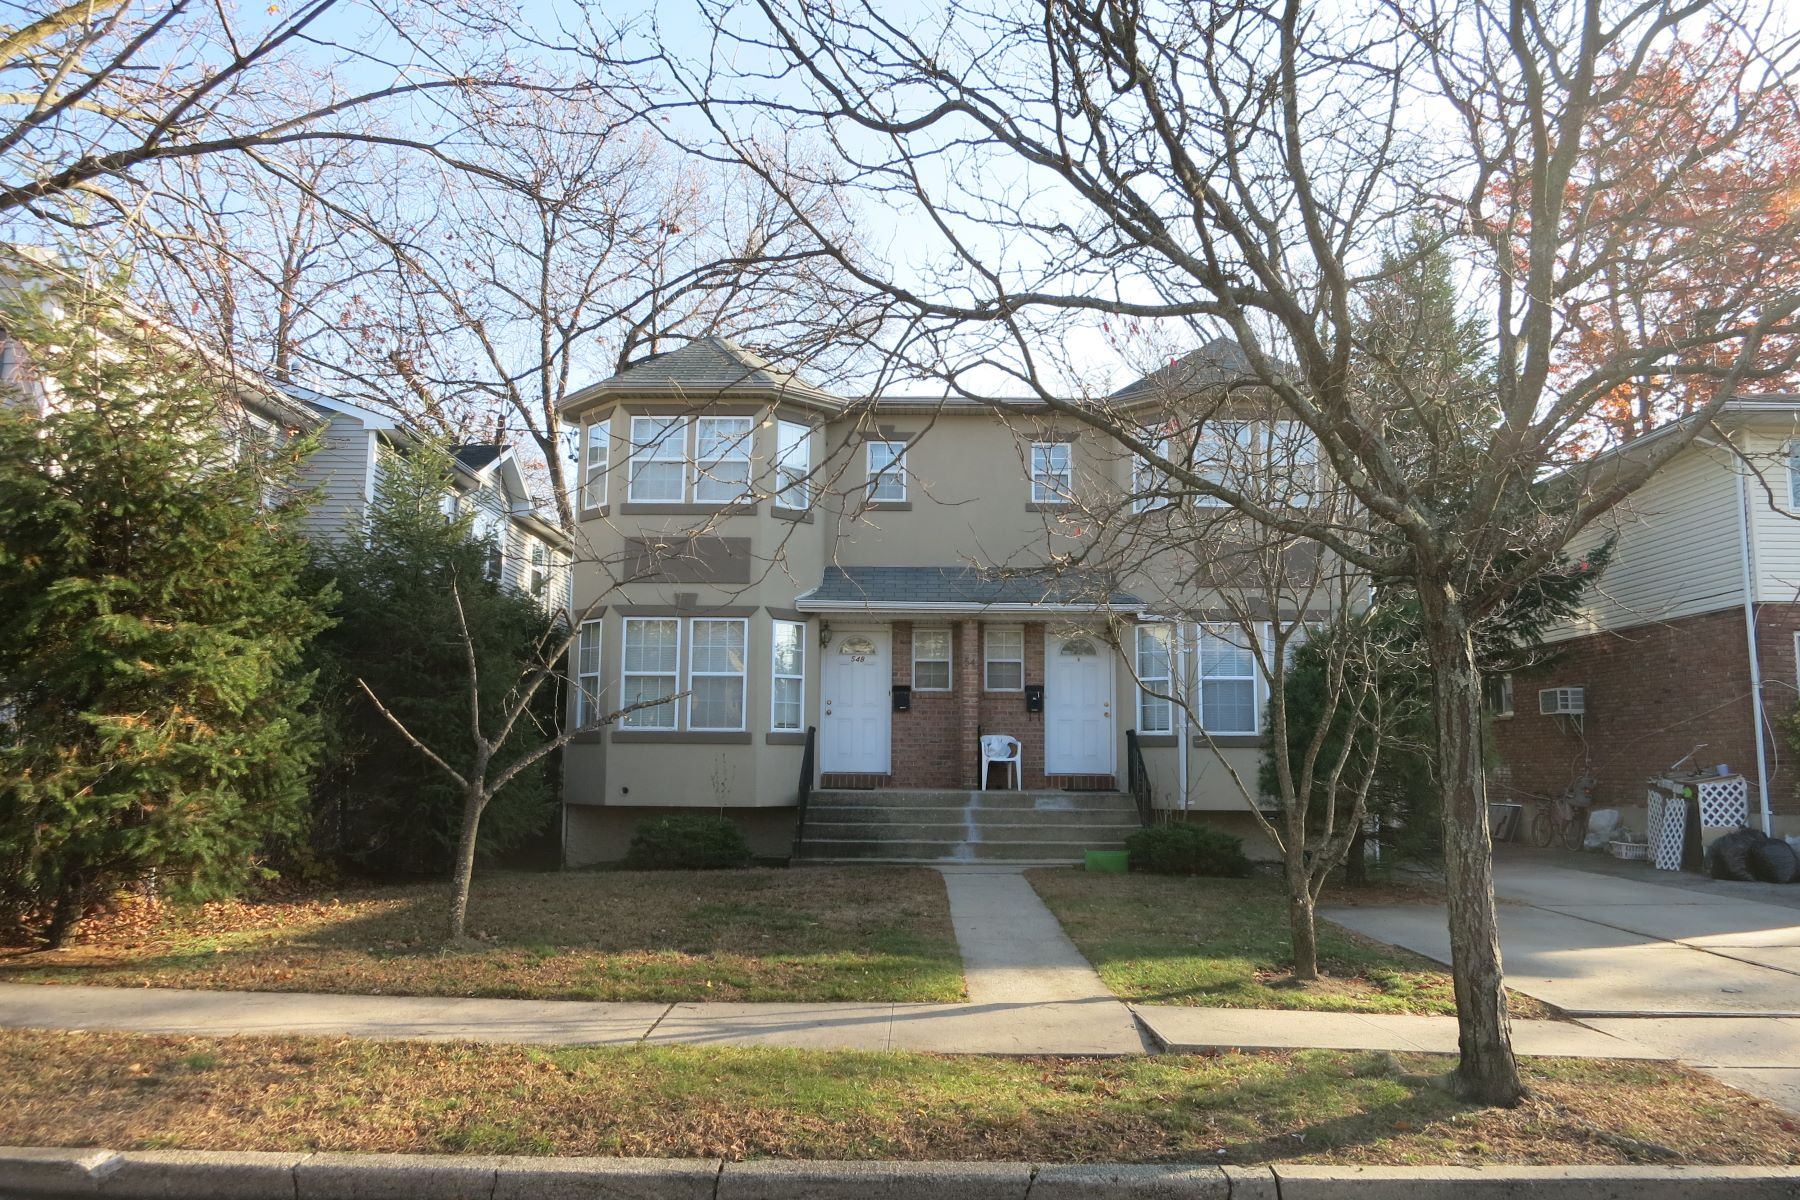 Multi-Family Home for Rent at 54 Inwood Rd , Port Washington, NY 11050 54 Inwood Rd Port Washington, New York 11050 United States